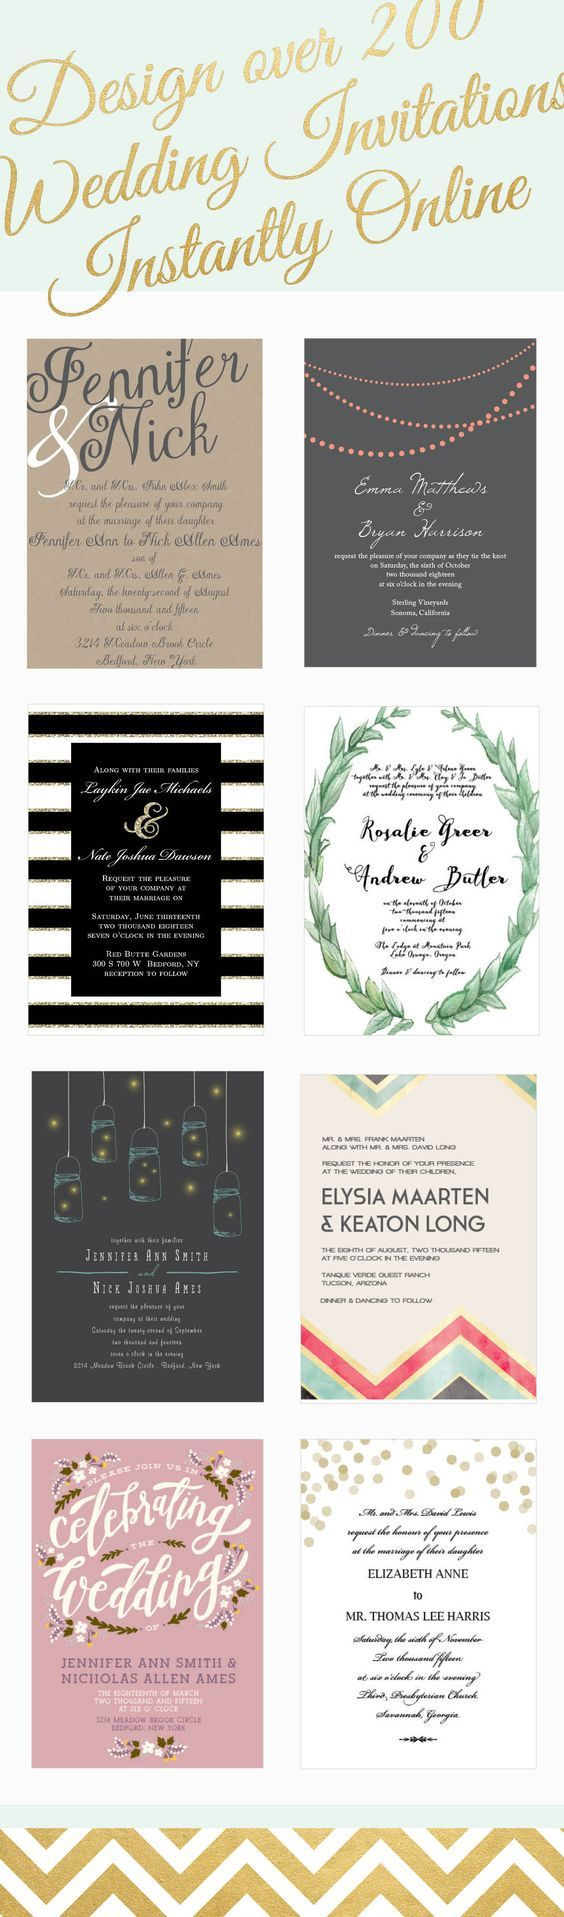 8 best wedding images on Pinterest | Invitations, Wedding stationary ...